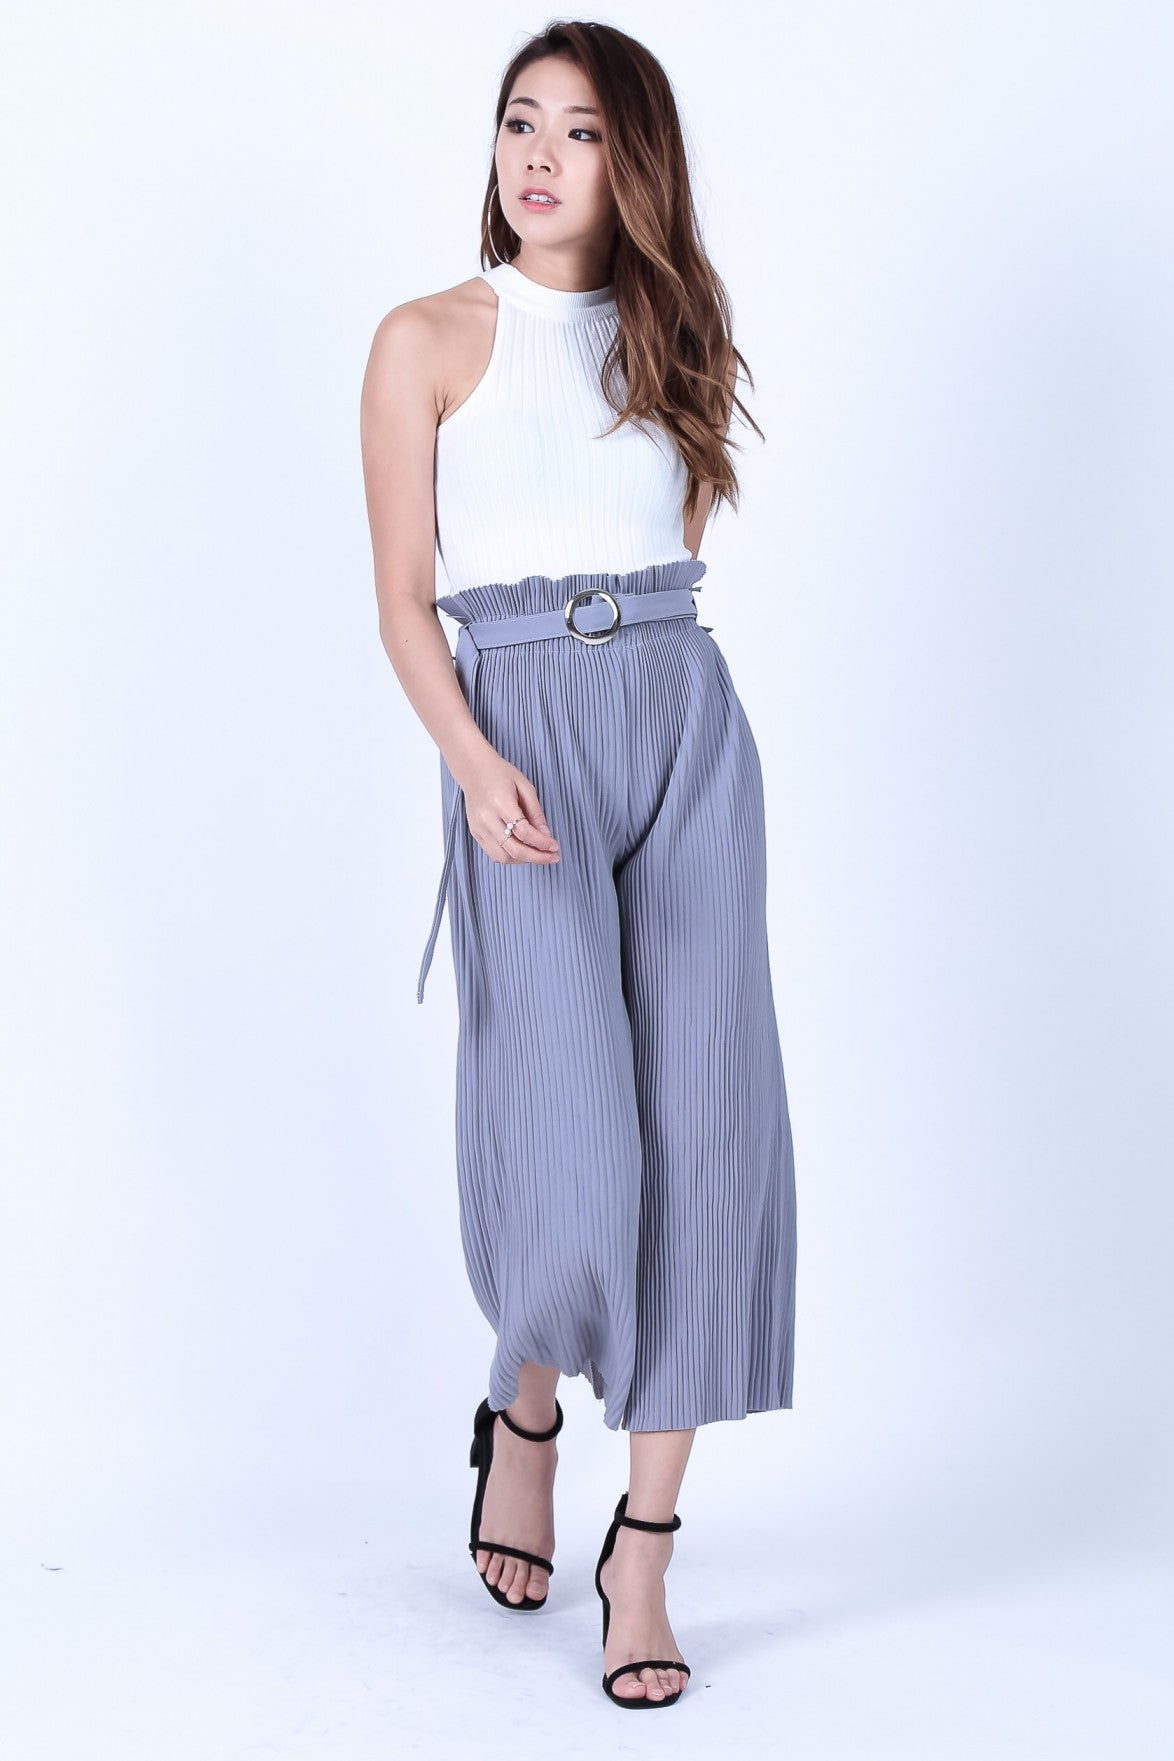 *RESTOCKED* OFF DUTY PLEATED CULOTTES IN GREY - TOPAZETTE